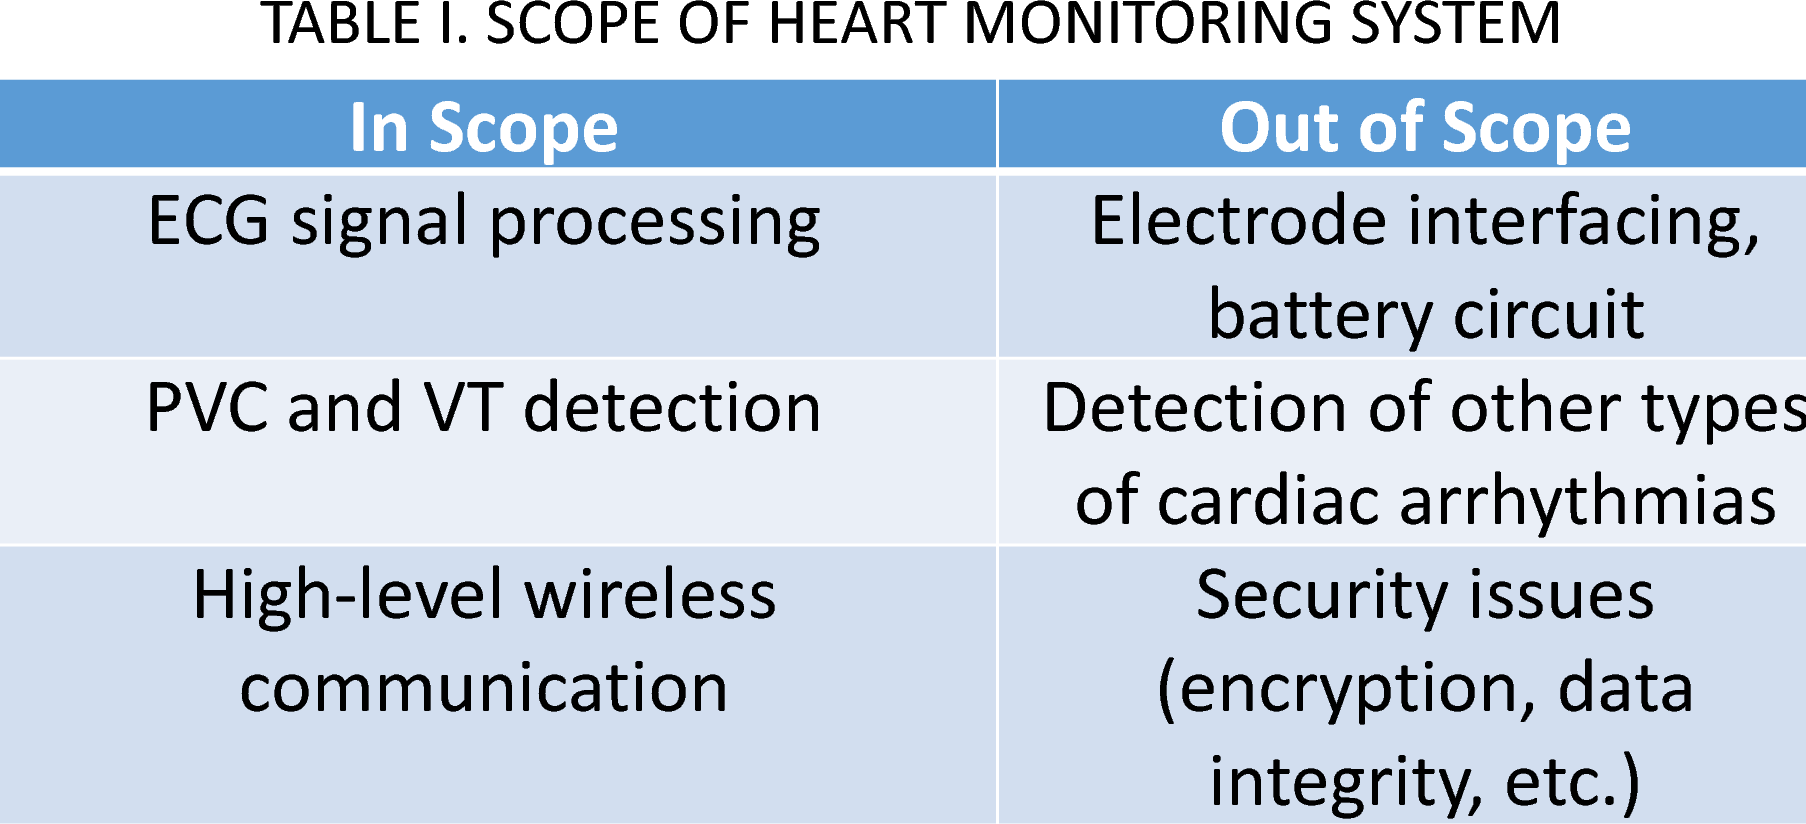 Table I from Cloud-based real-time heart monitoring and ECG signal